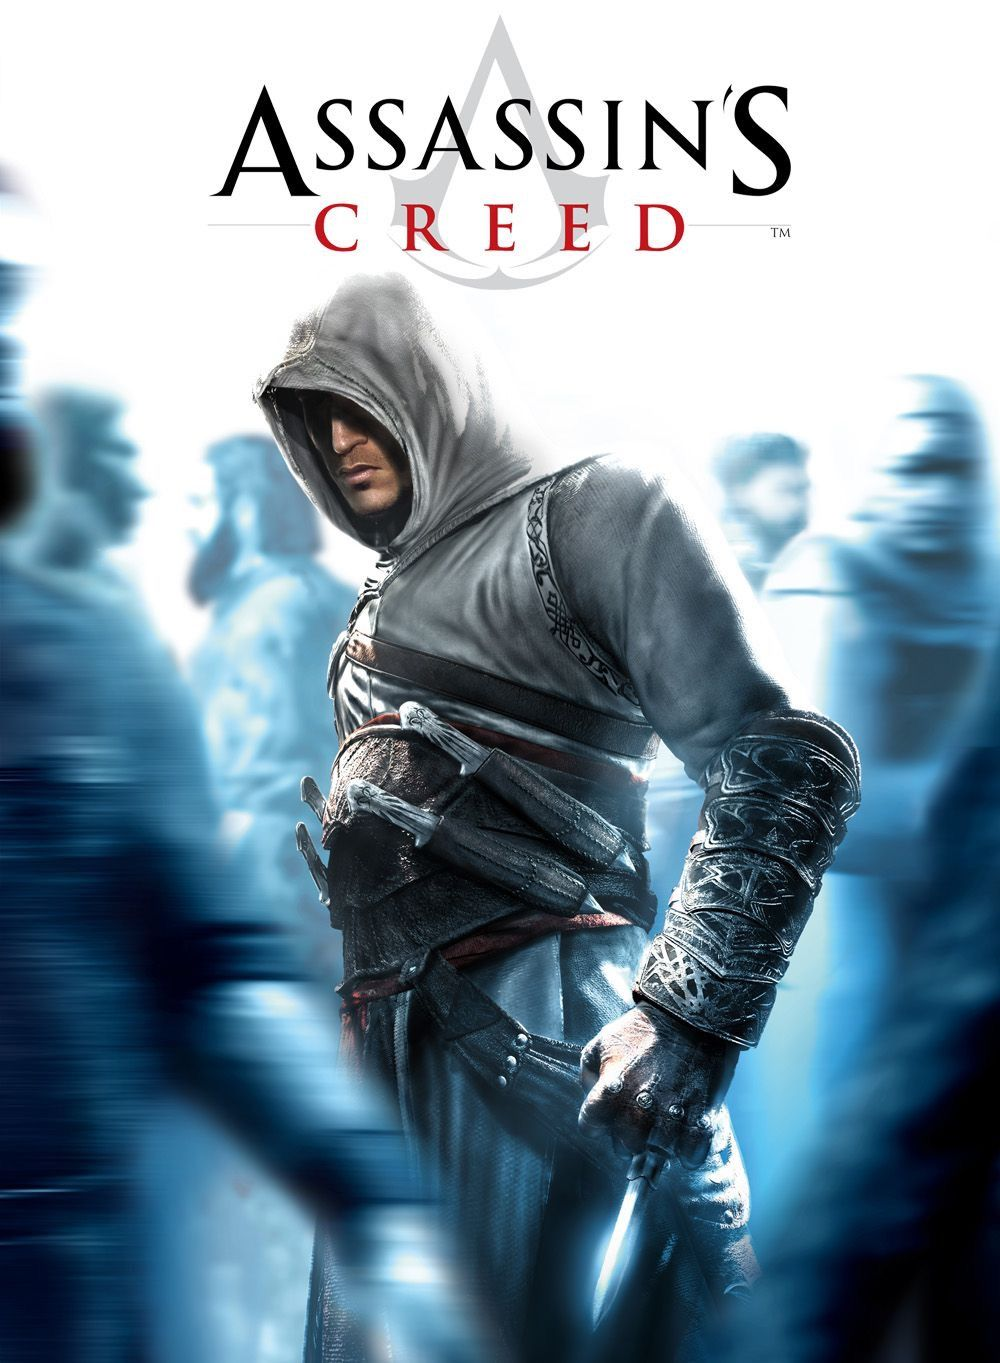 Pin By Hunter Matlock On Assassin S Creed Assassins Creed Assassins Creed 1 Assassin S Creed I